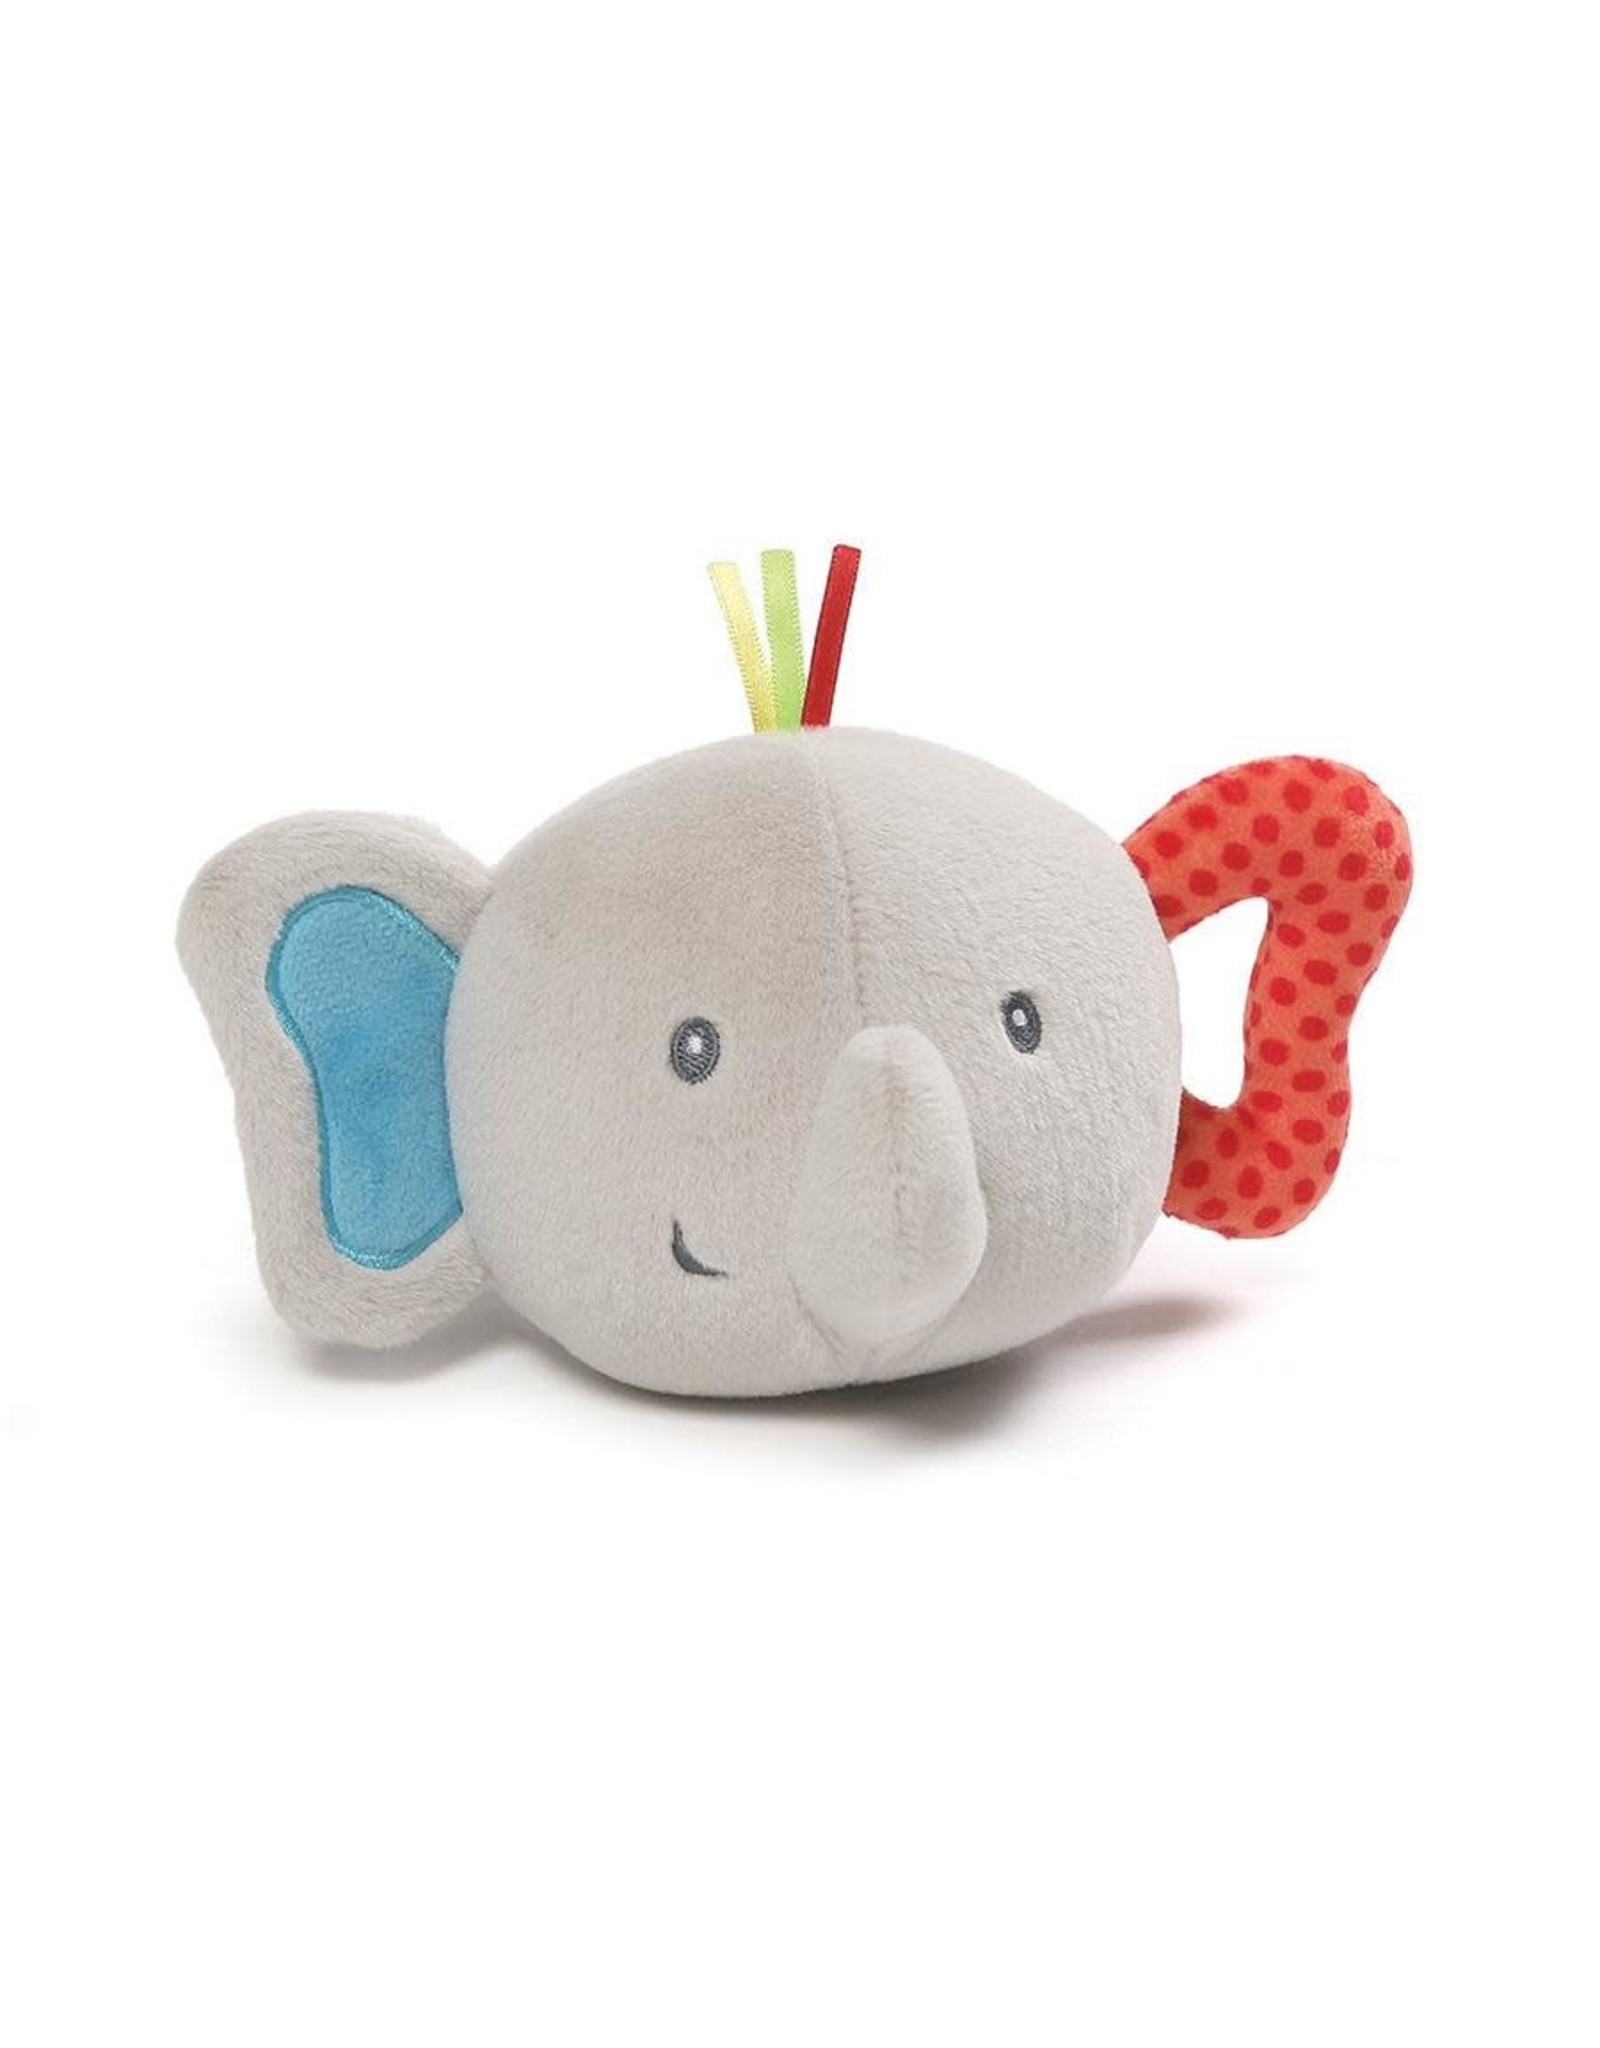 gund Flappy Silly Sounds Ball, 6 in